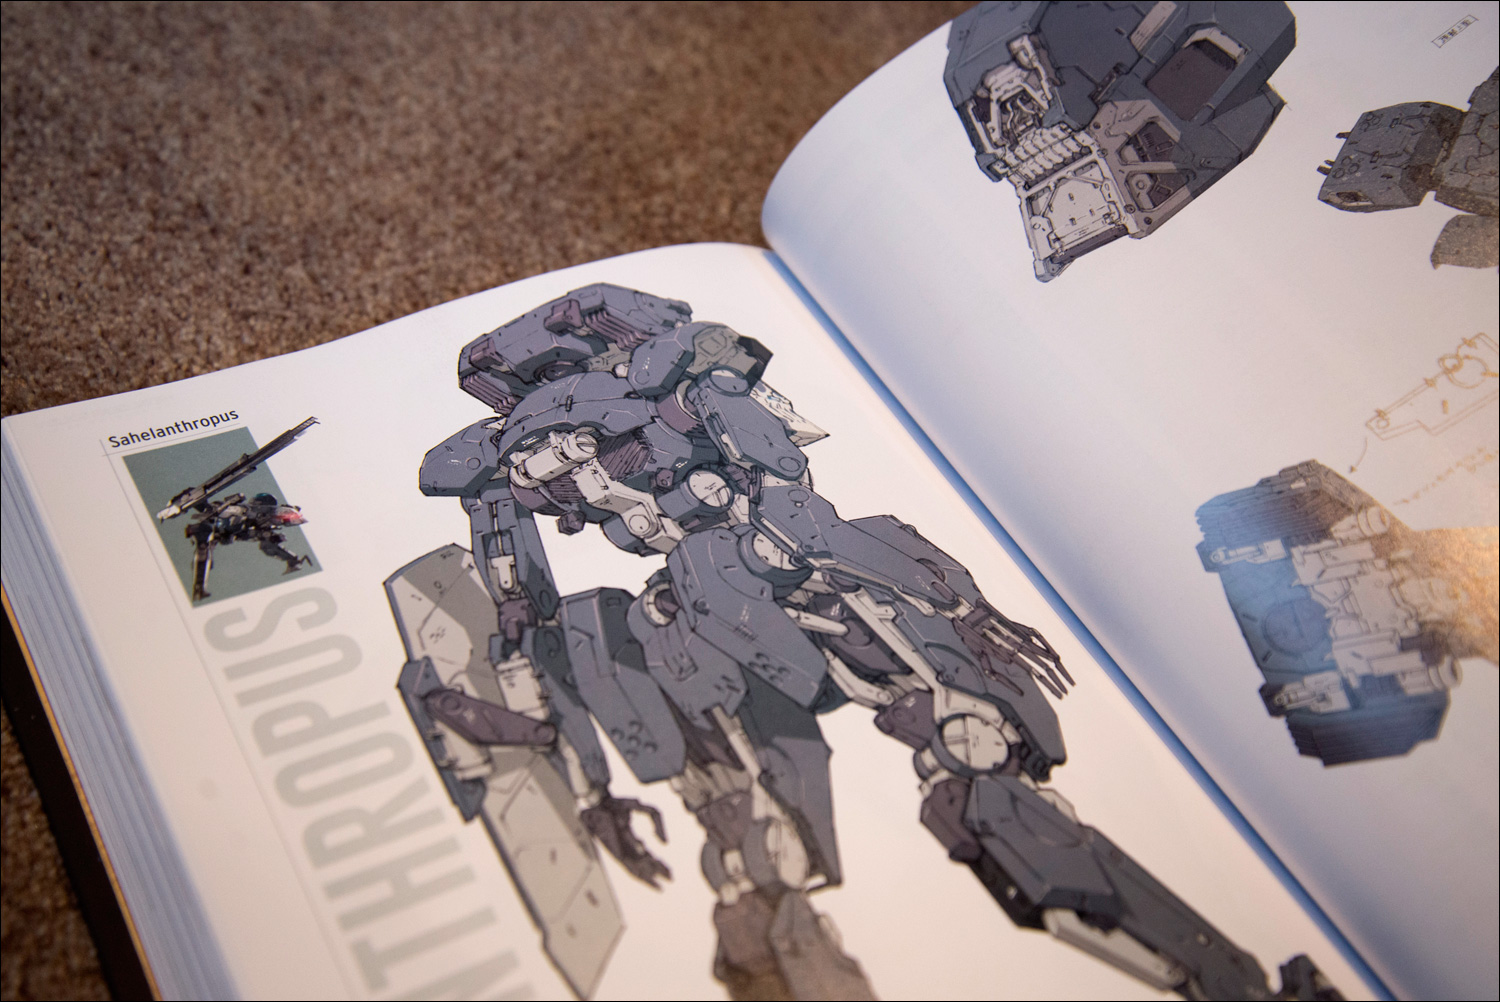 Metal-Gear-Solid-V-The-Phantom-Pain-Collector's-Edition-Guide-Artwork-Gallery-Sahelanthropus